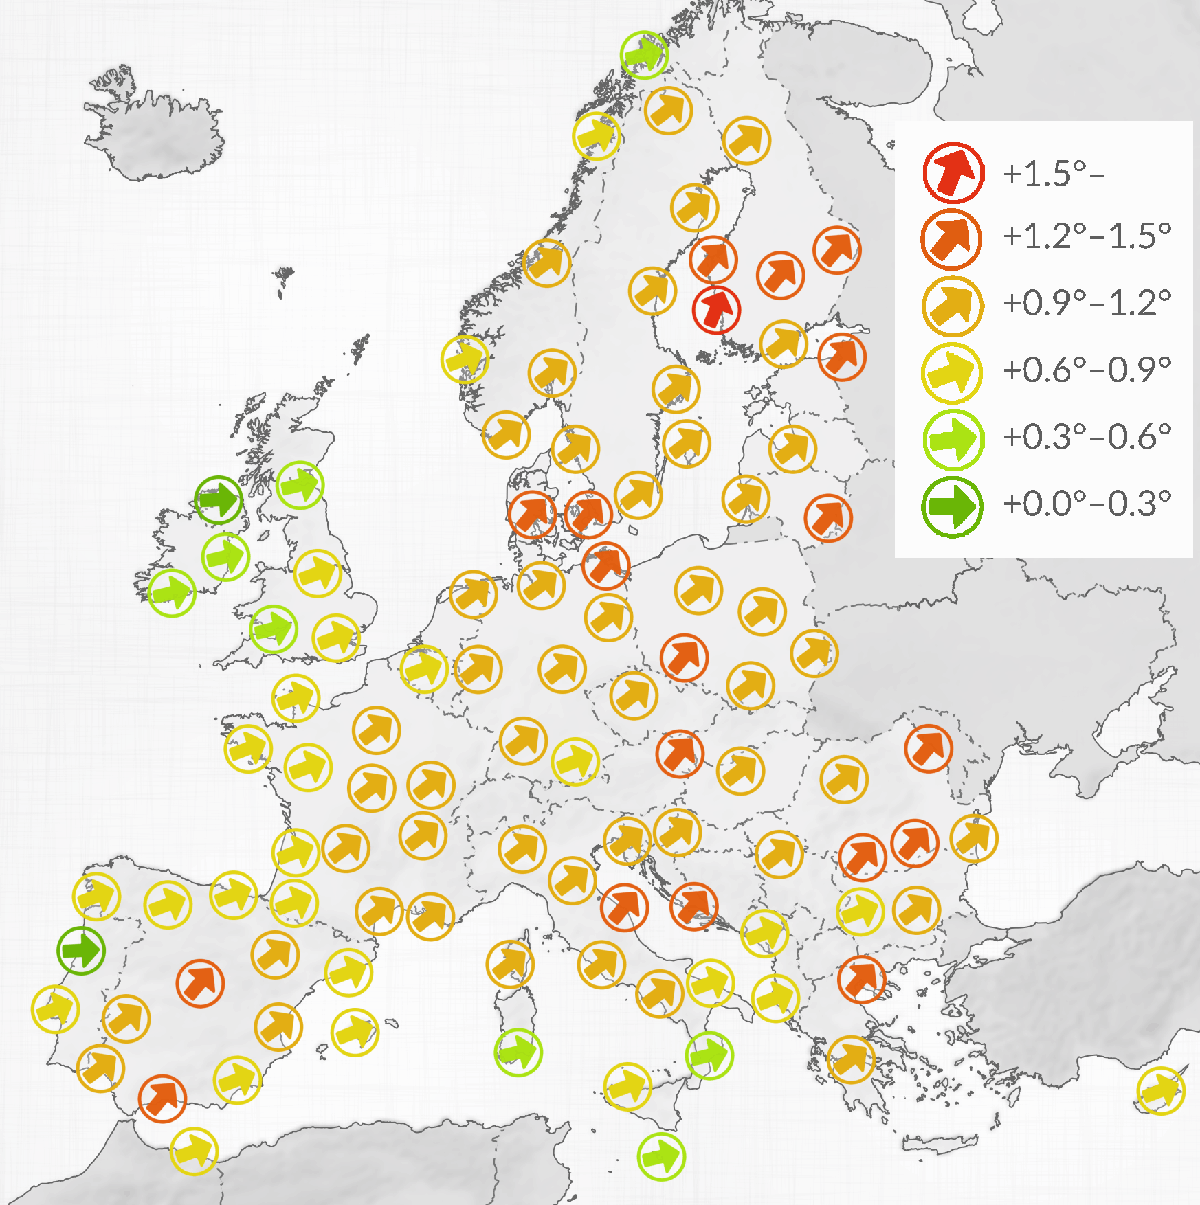 Map showing temperature differences in selected European cities, between 20th century and 21st century averages.